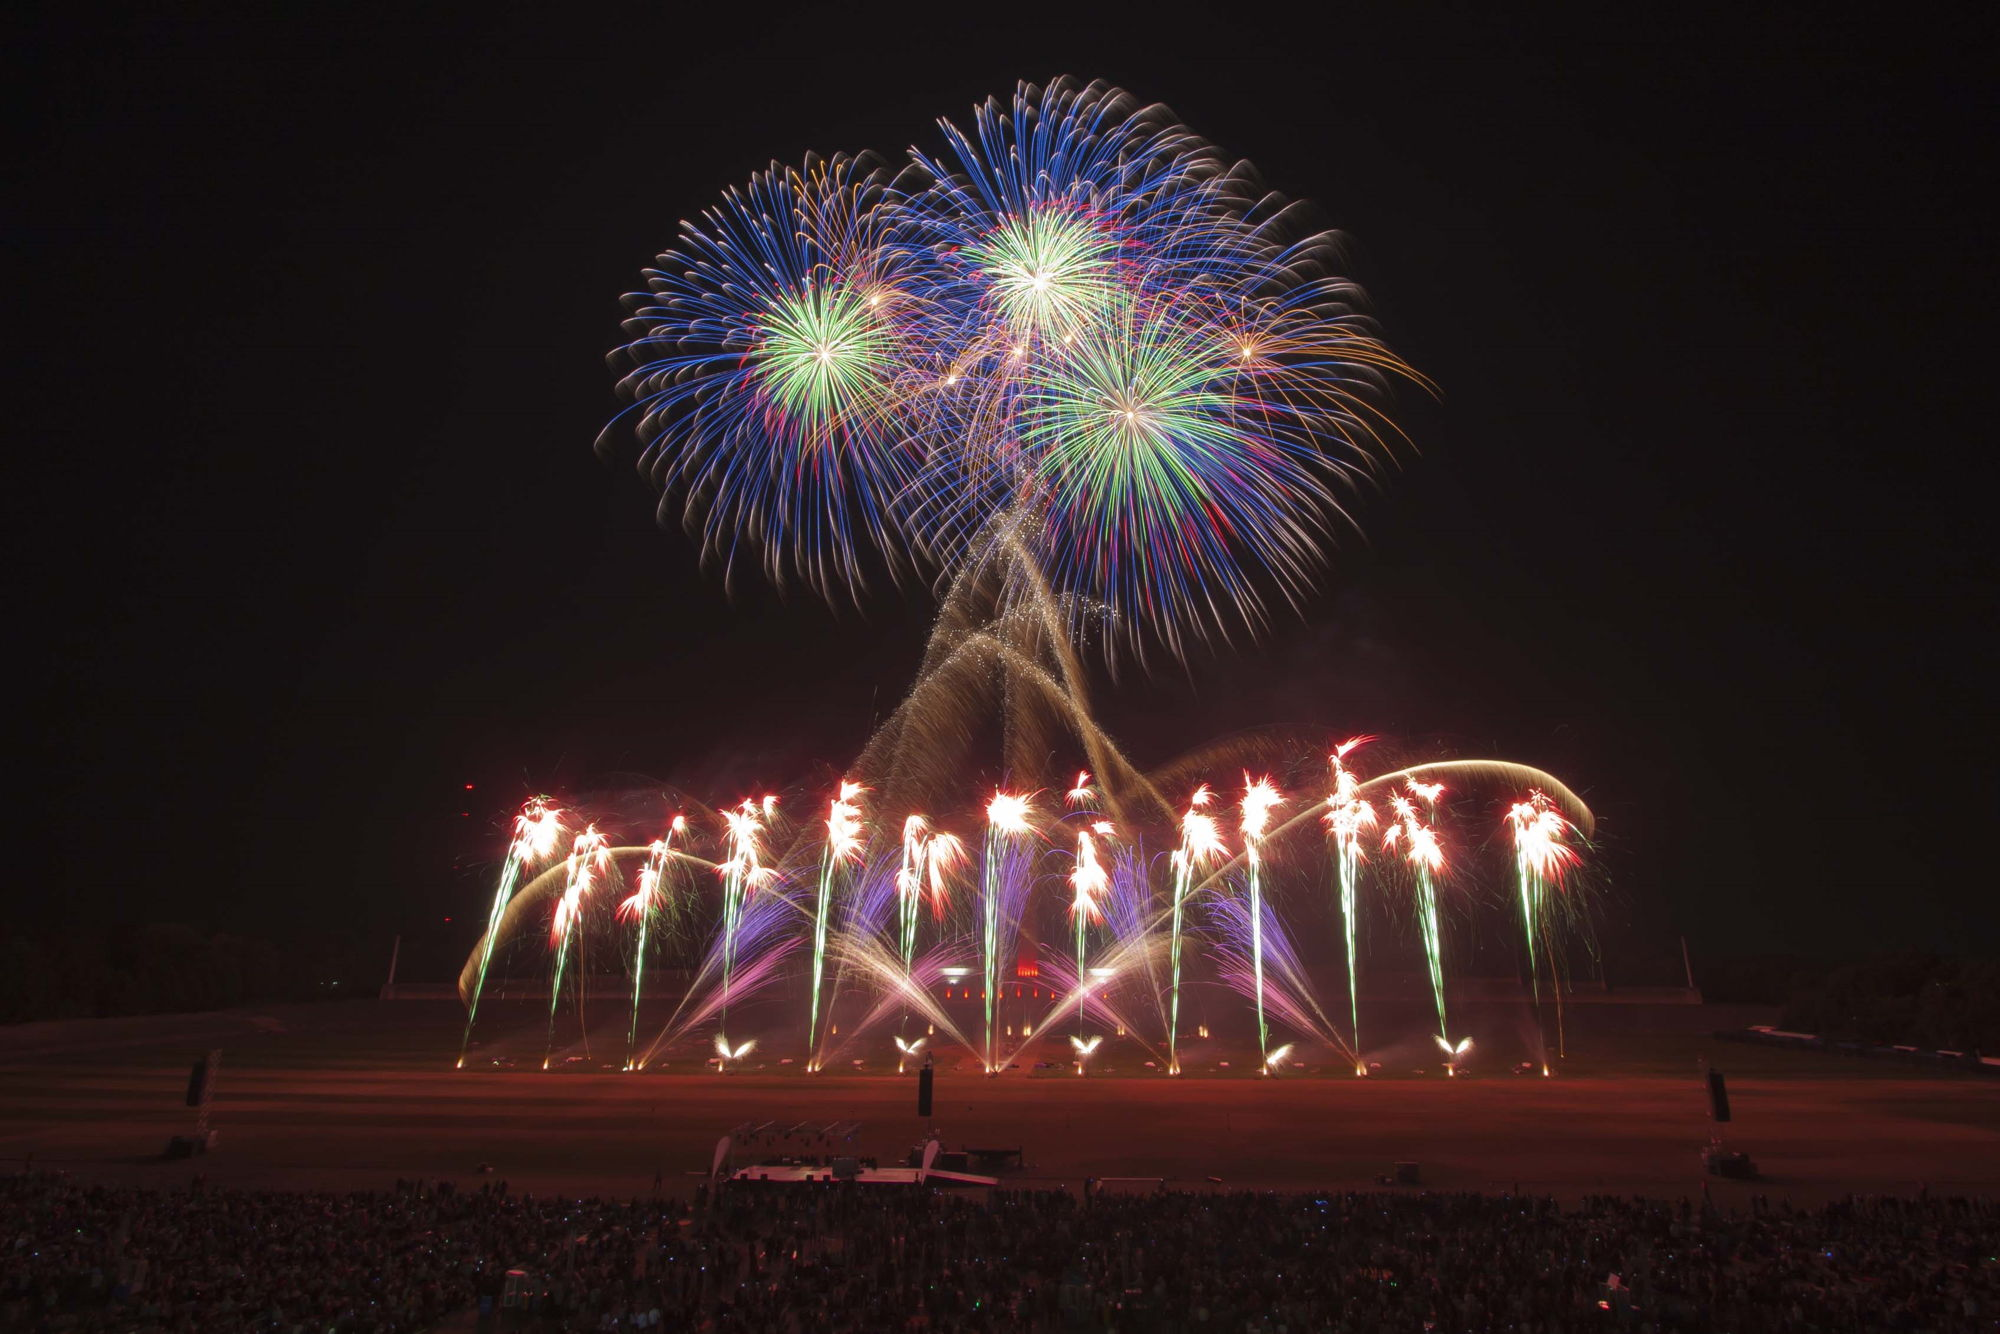 International fireworks competitions